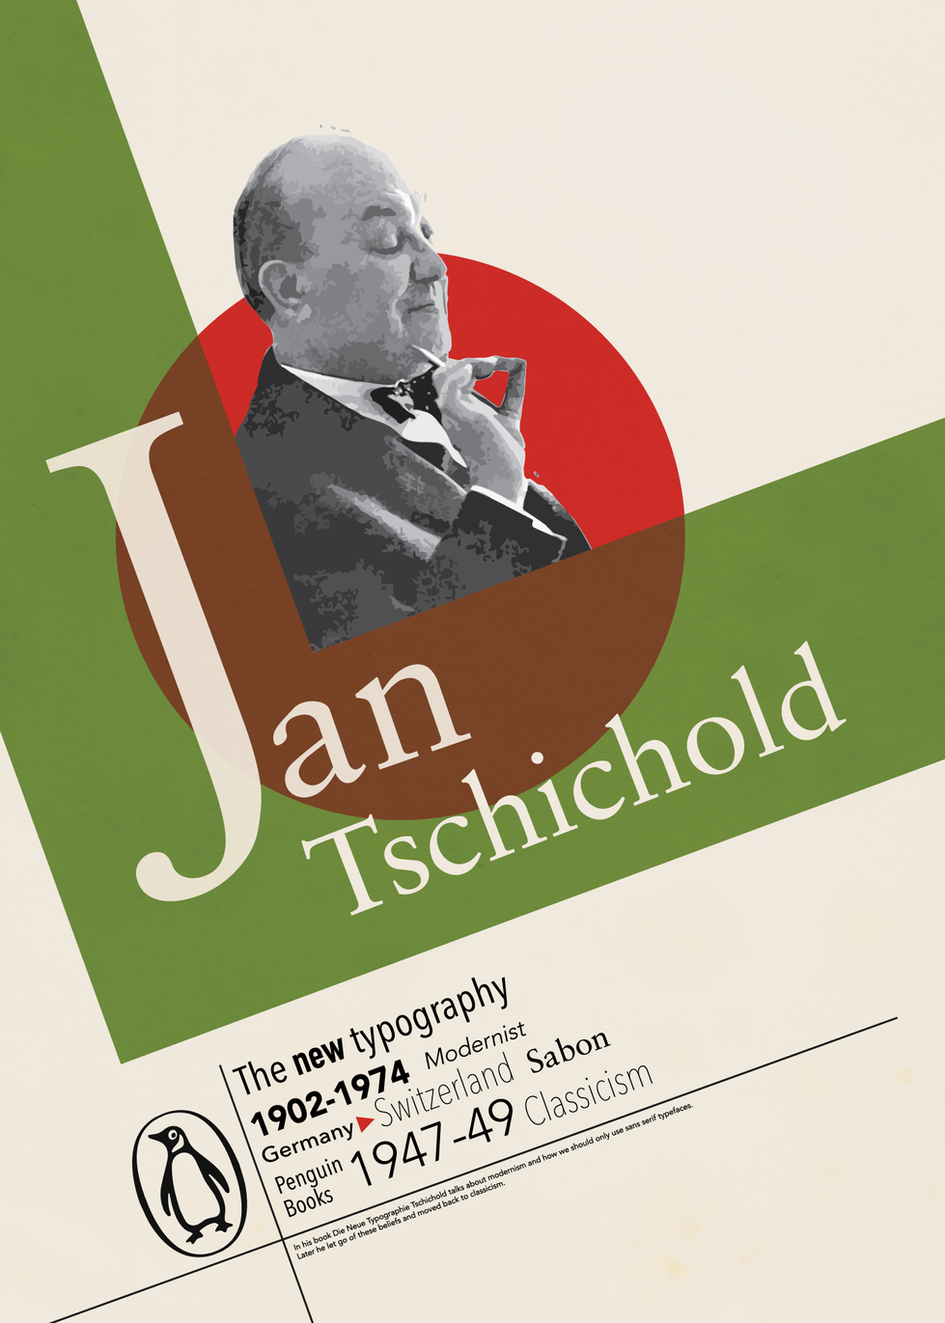 A tribute to Jan Tschichold